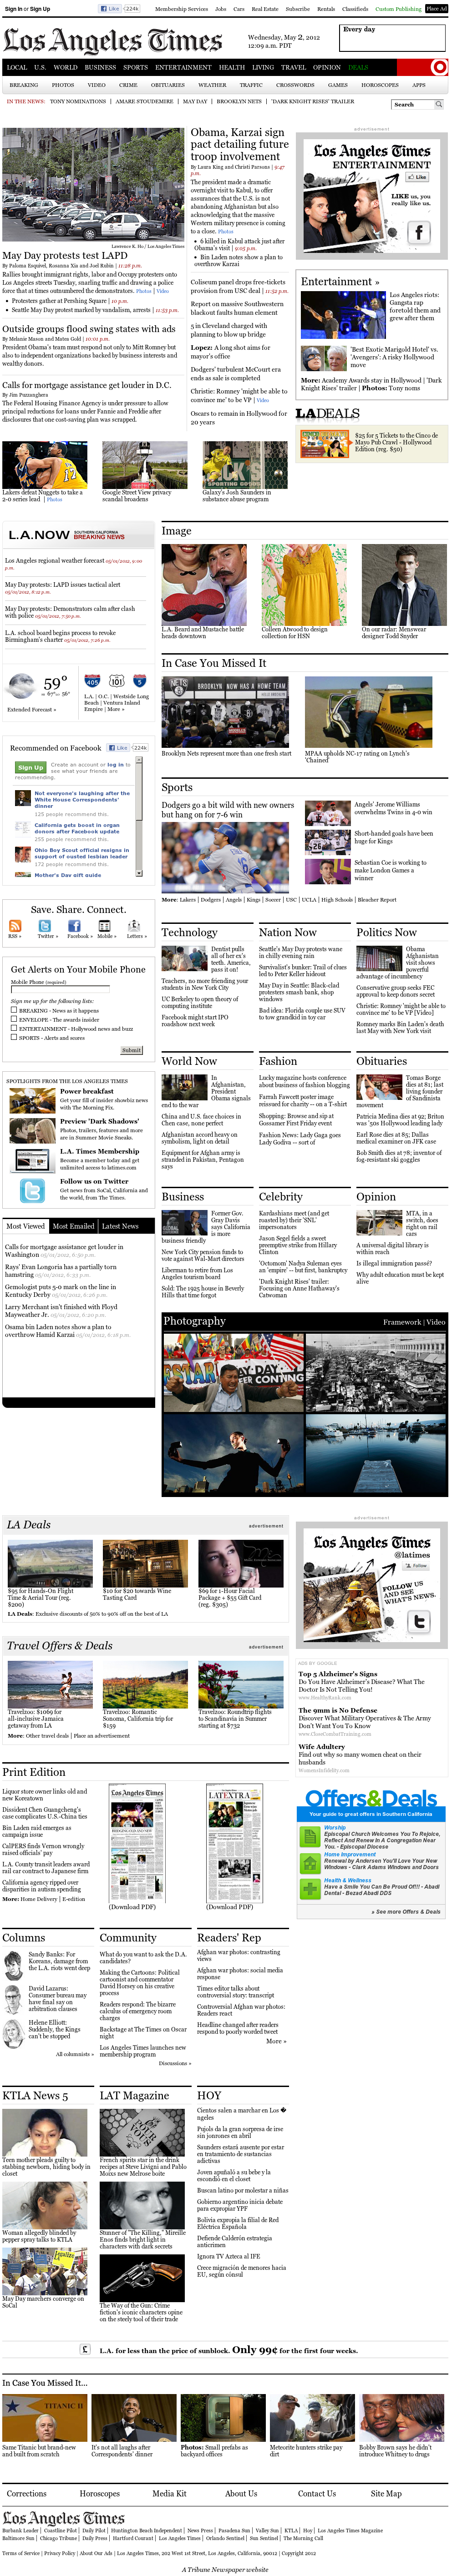 Los Angeles Times at Wednesday May 2, 2012, 7:09 a.m. UTC